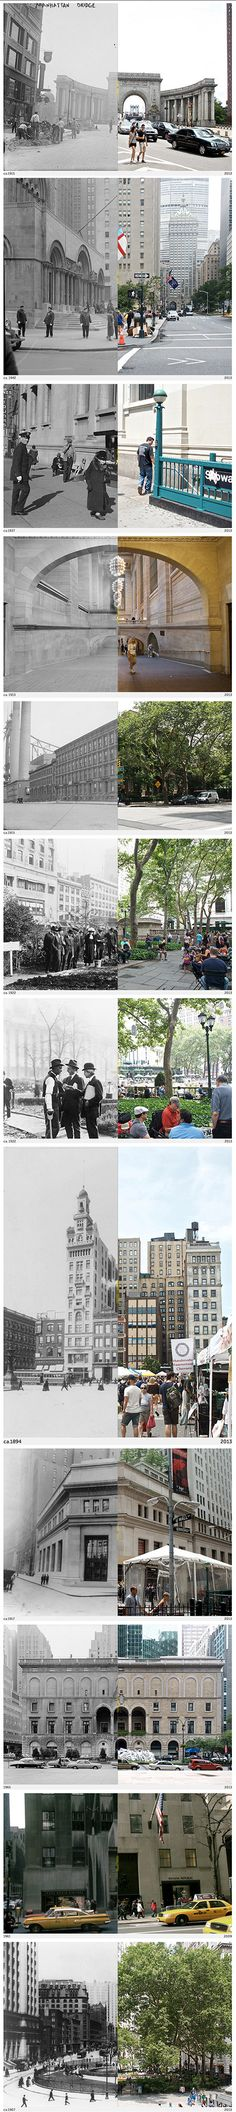 12 Then and Now Photos of NYC That Show How Much It's Changed - Here & There